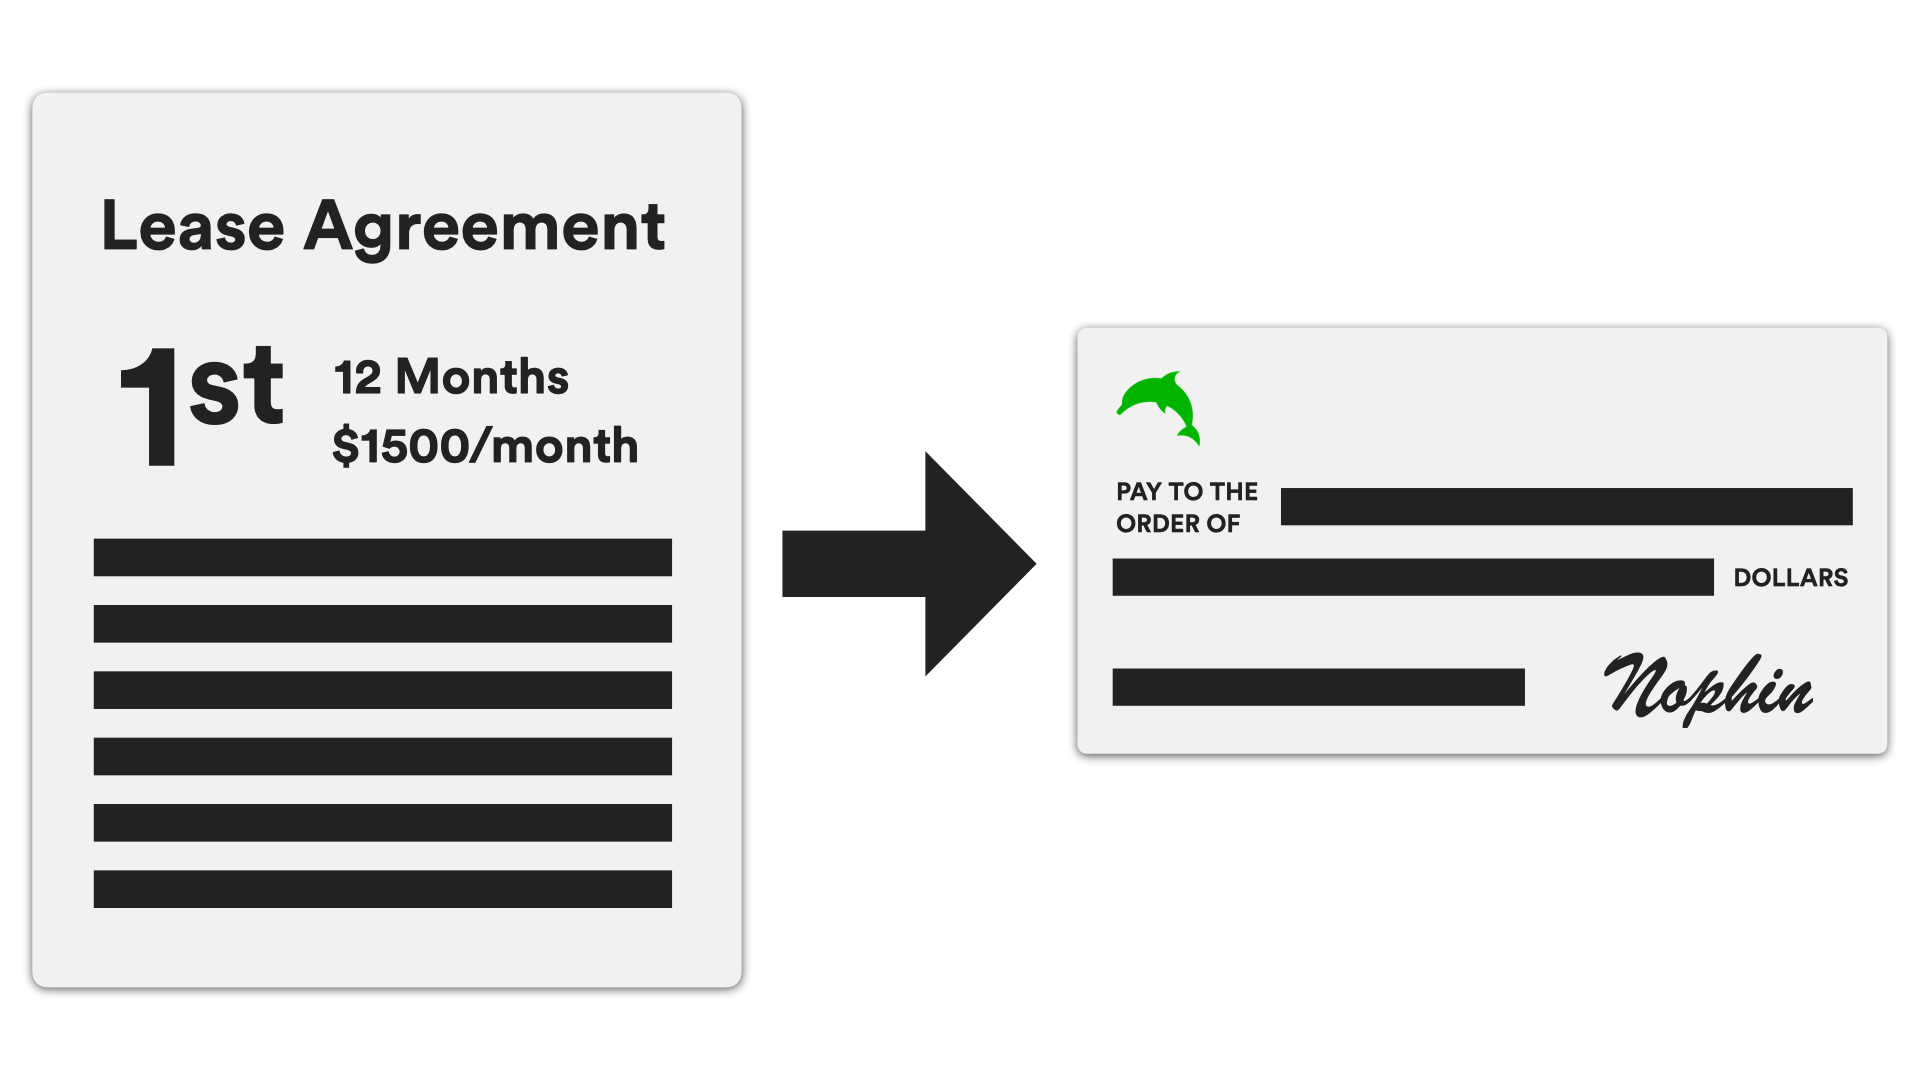 Convert your lease agreement into a lump sum.